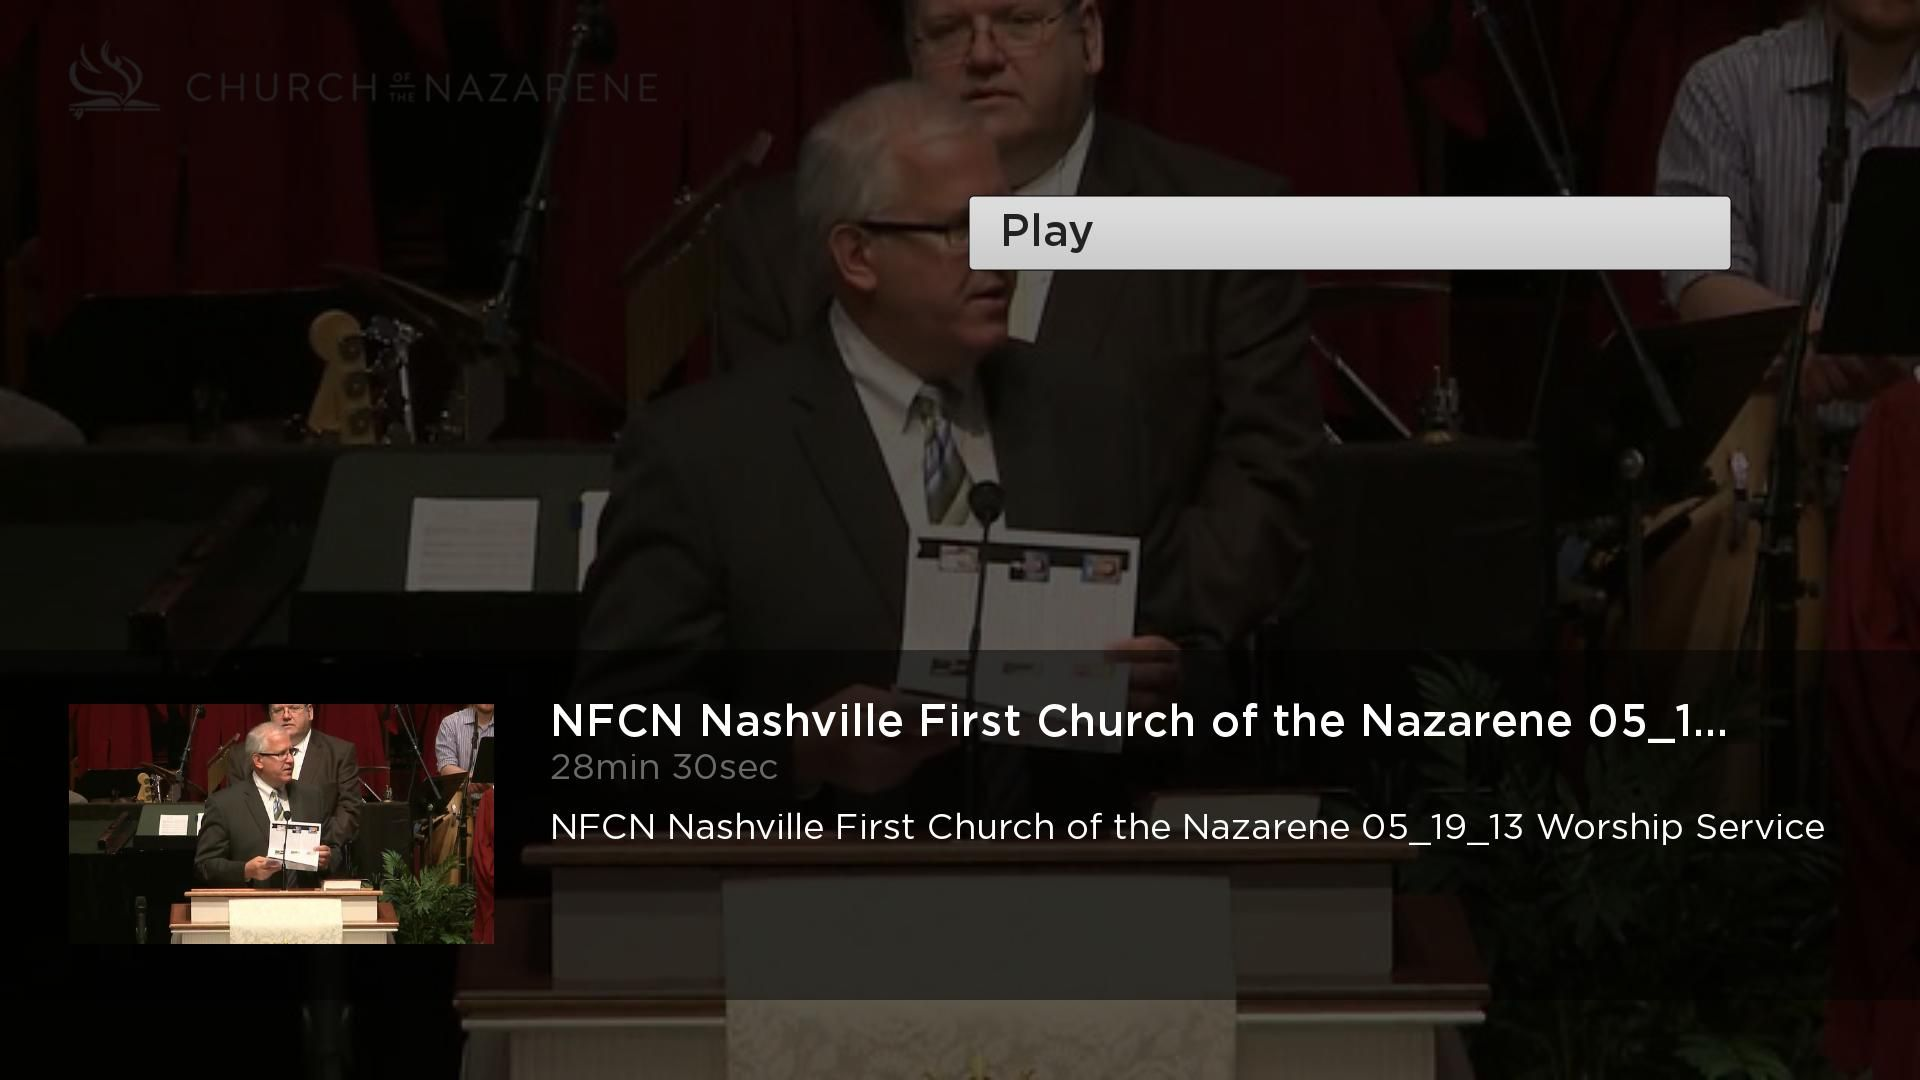 Churches of the Nazarene Screenshot 003